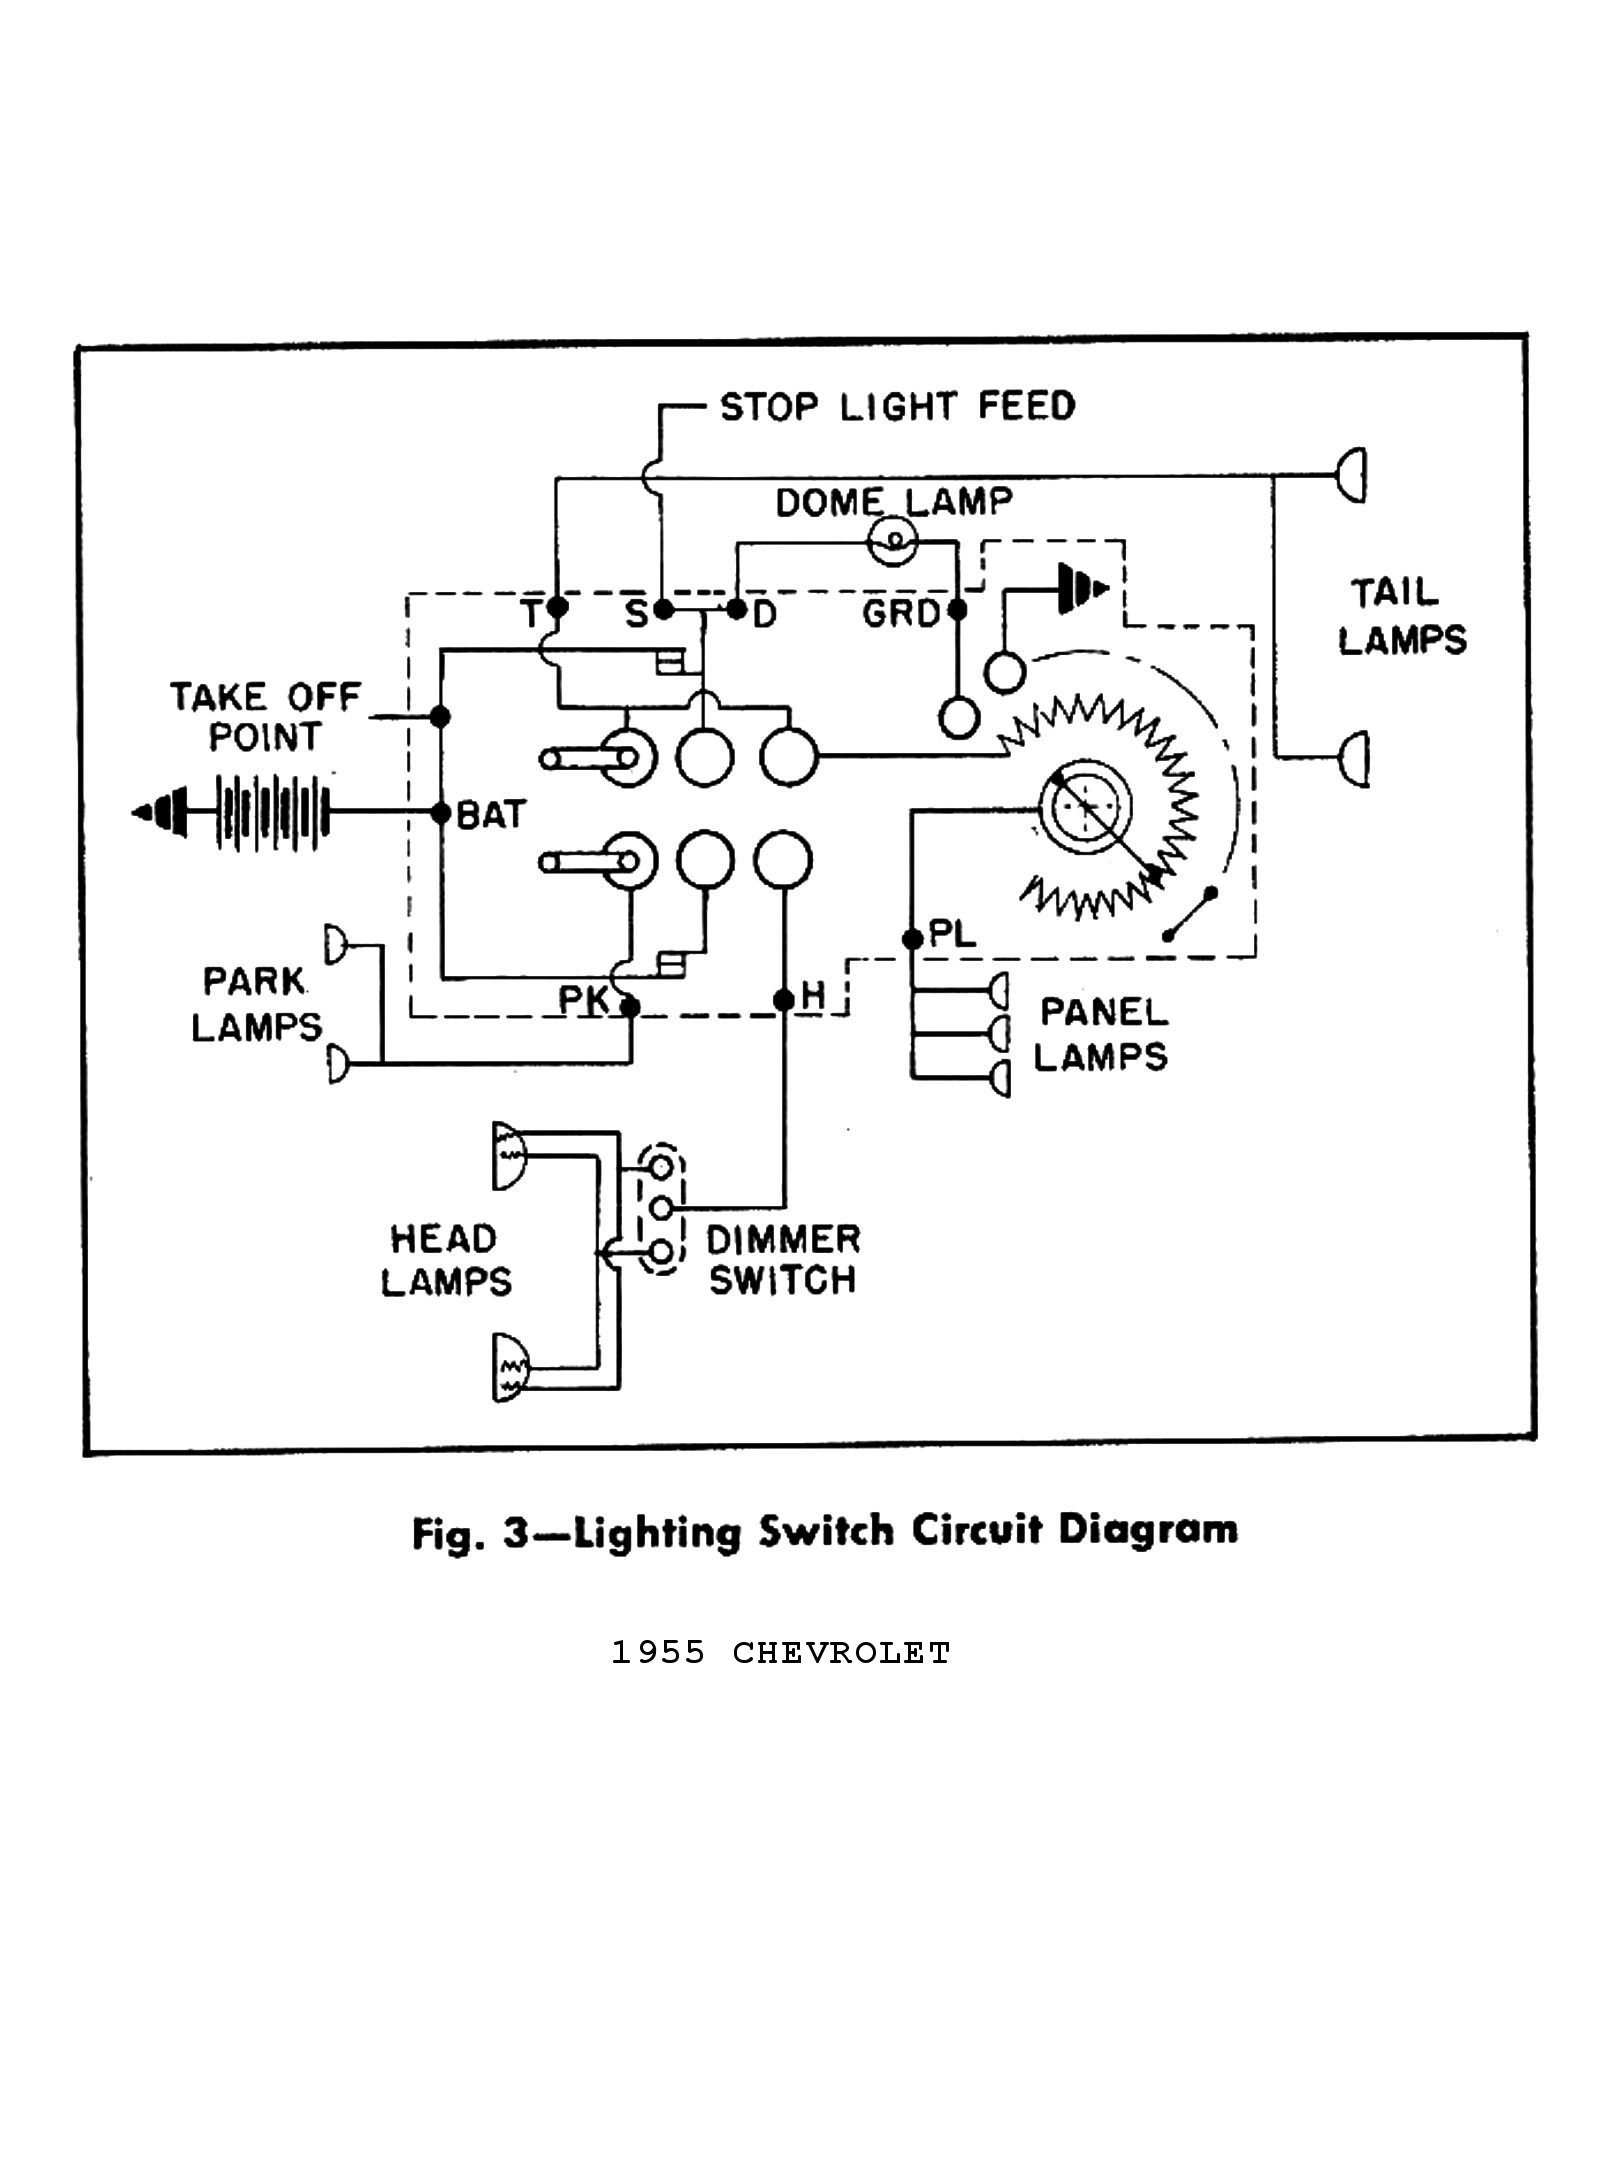 55ctsm1203 light switch wiring diagram on 59?? the 1947 present chevrolet 1972 chevy truck ignition switch wiring diagram at aneh.co